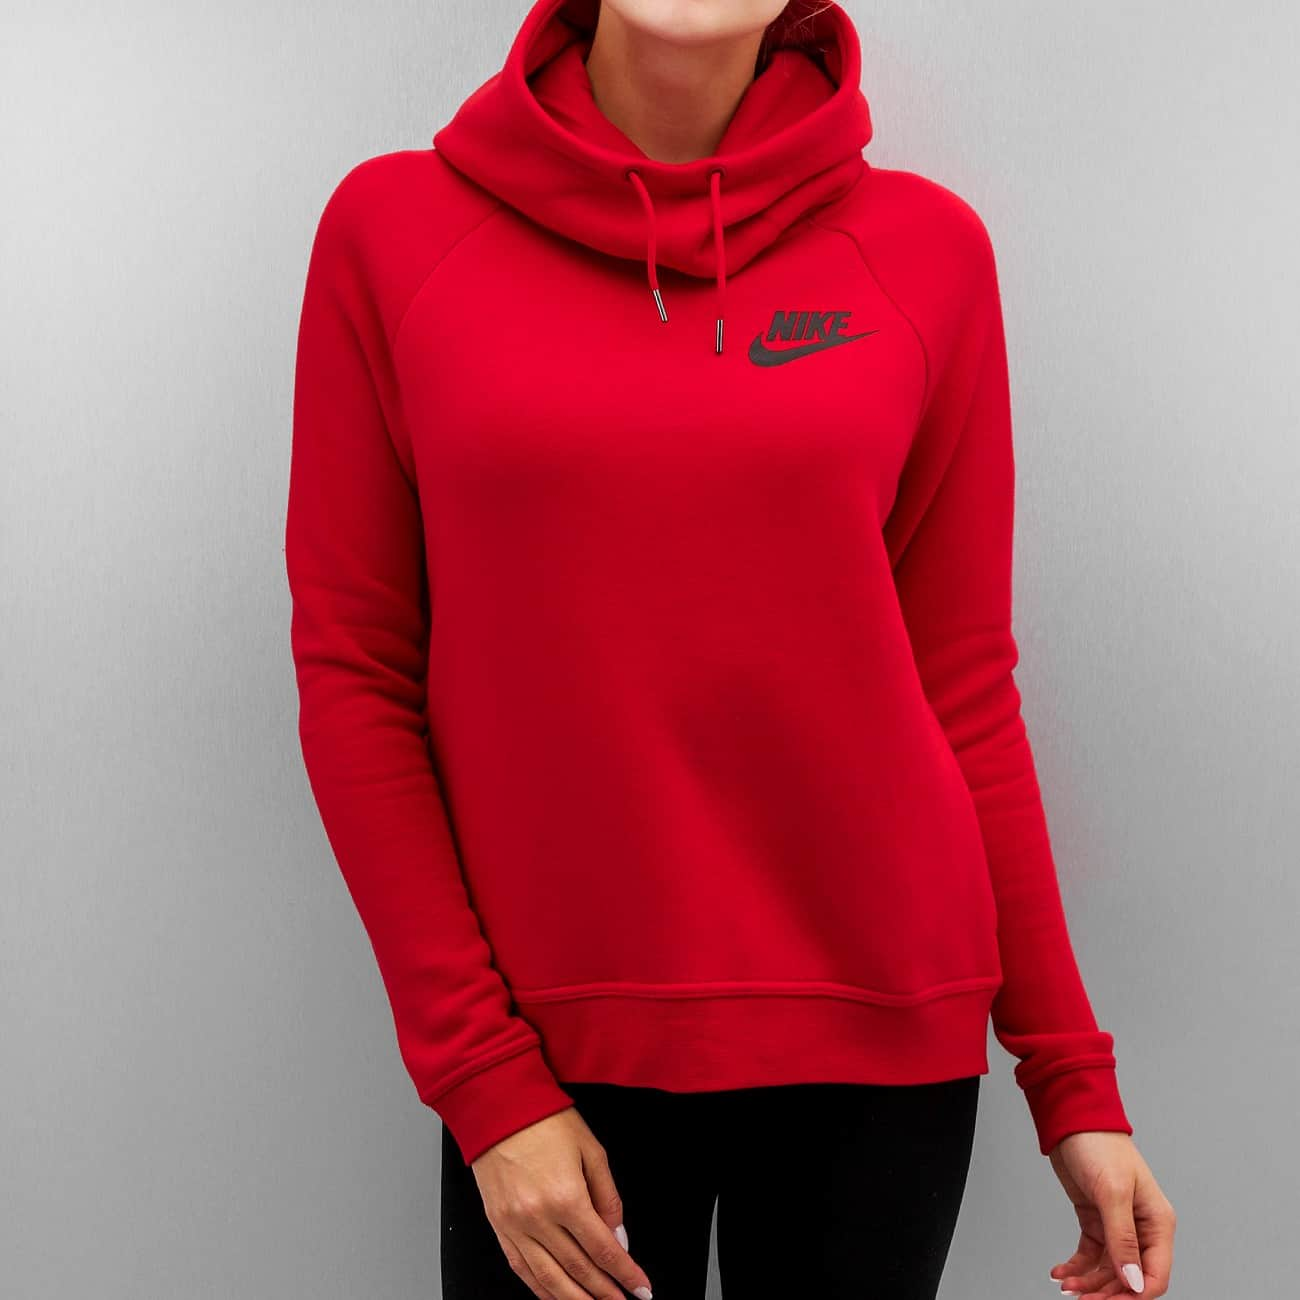 Chapka Chapka amp  Nike Rouge D hiver D hiver Vetement Doudoune Pull WUO6v 9fe9786600bc